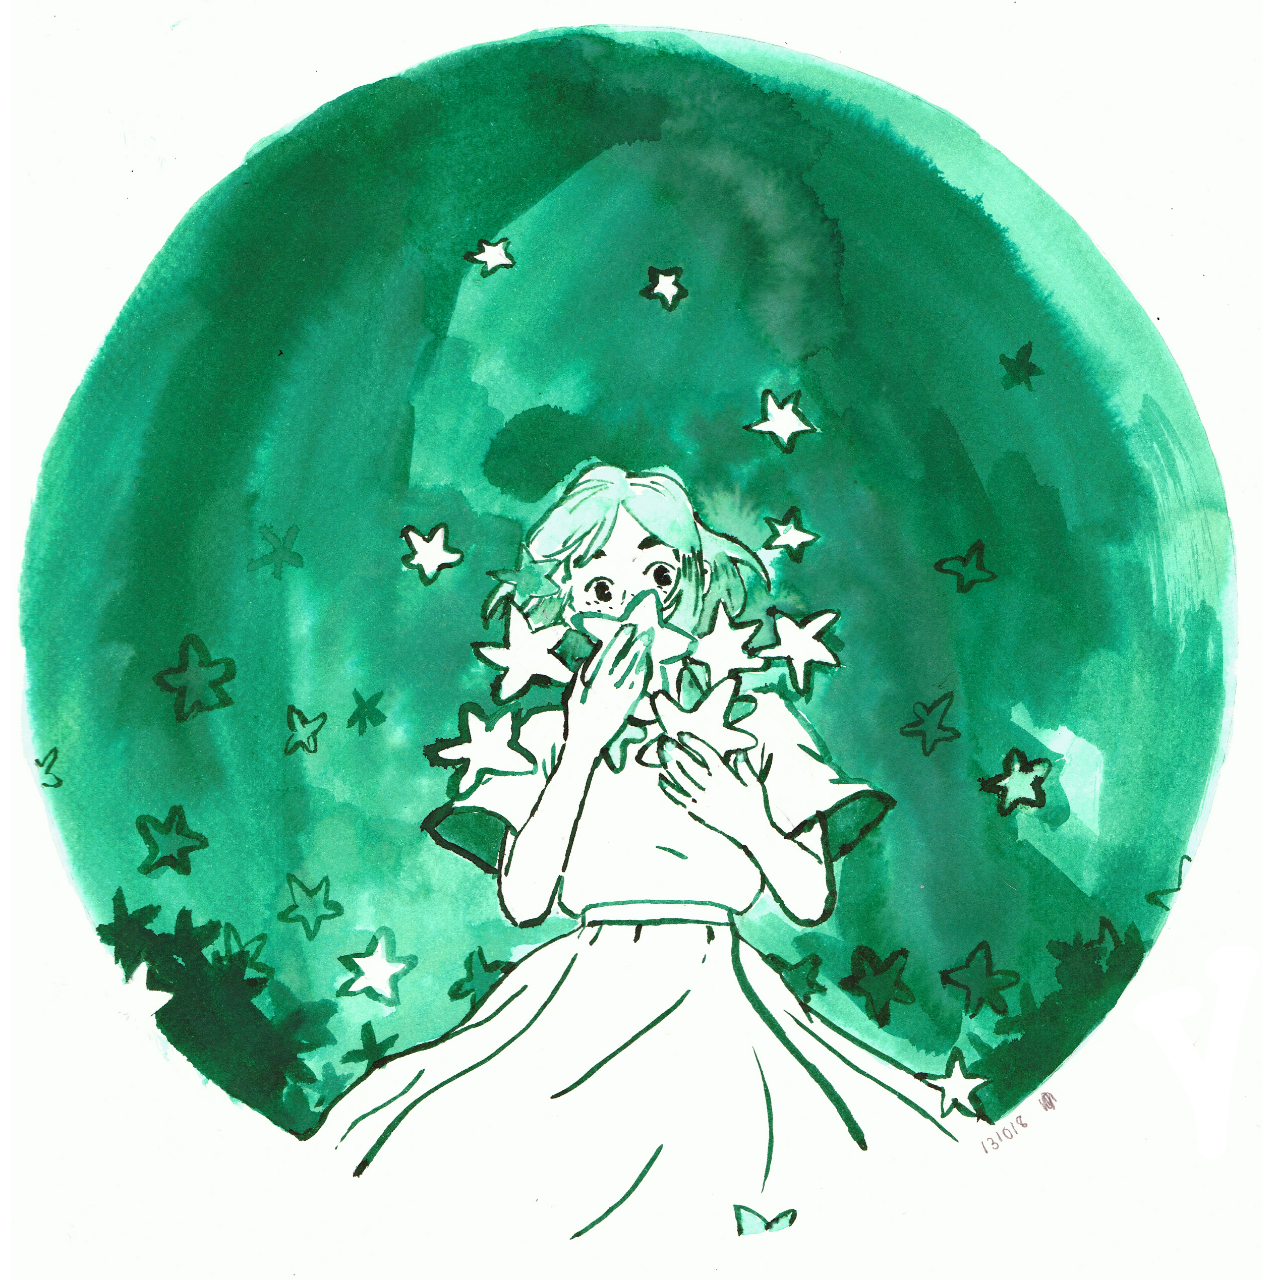 Ink drawing of a girl holding stars to her face while stars are gently raining down around her